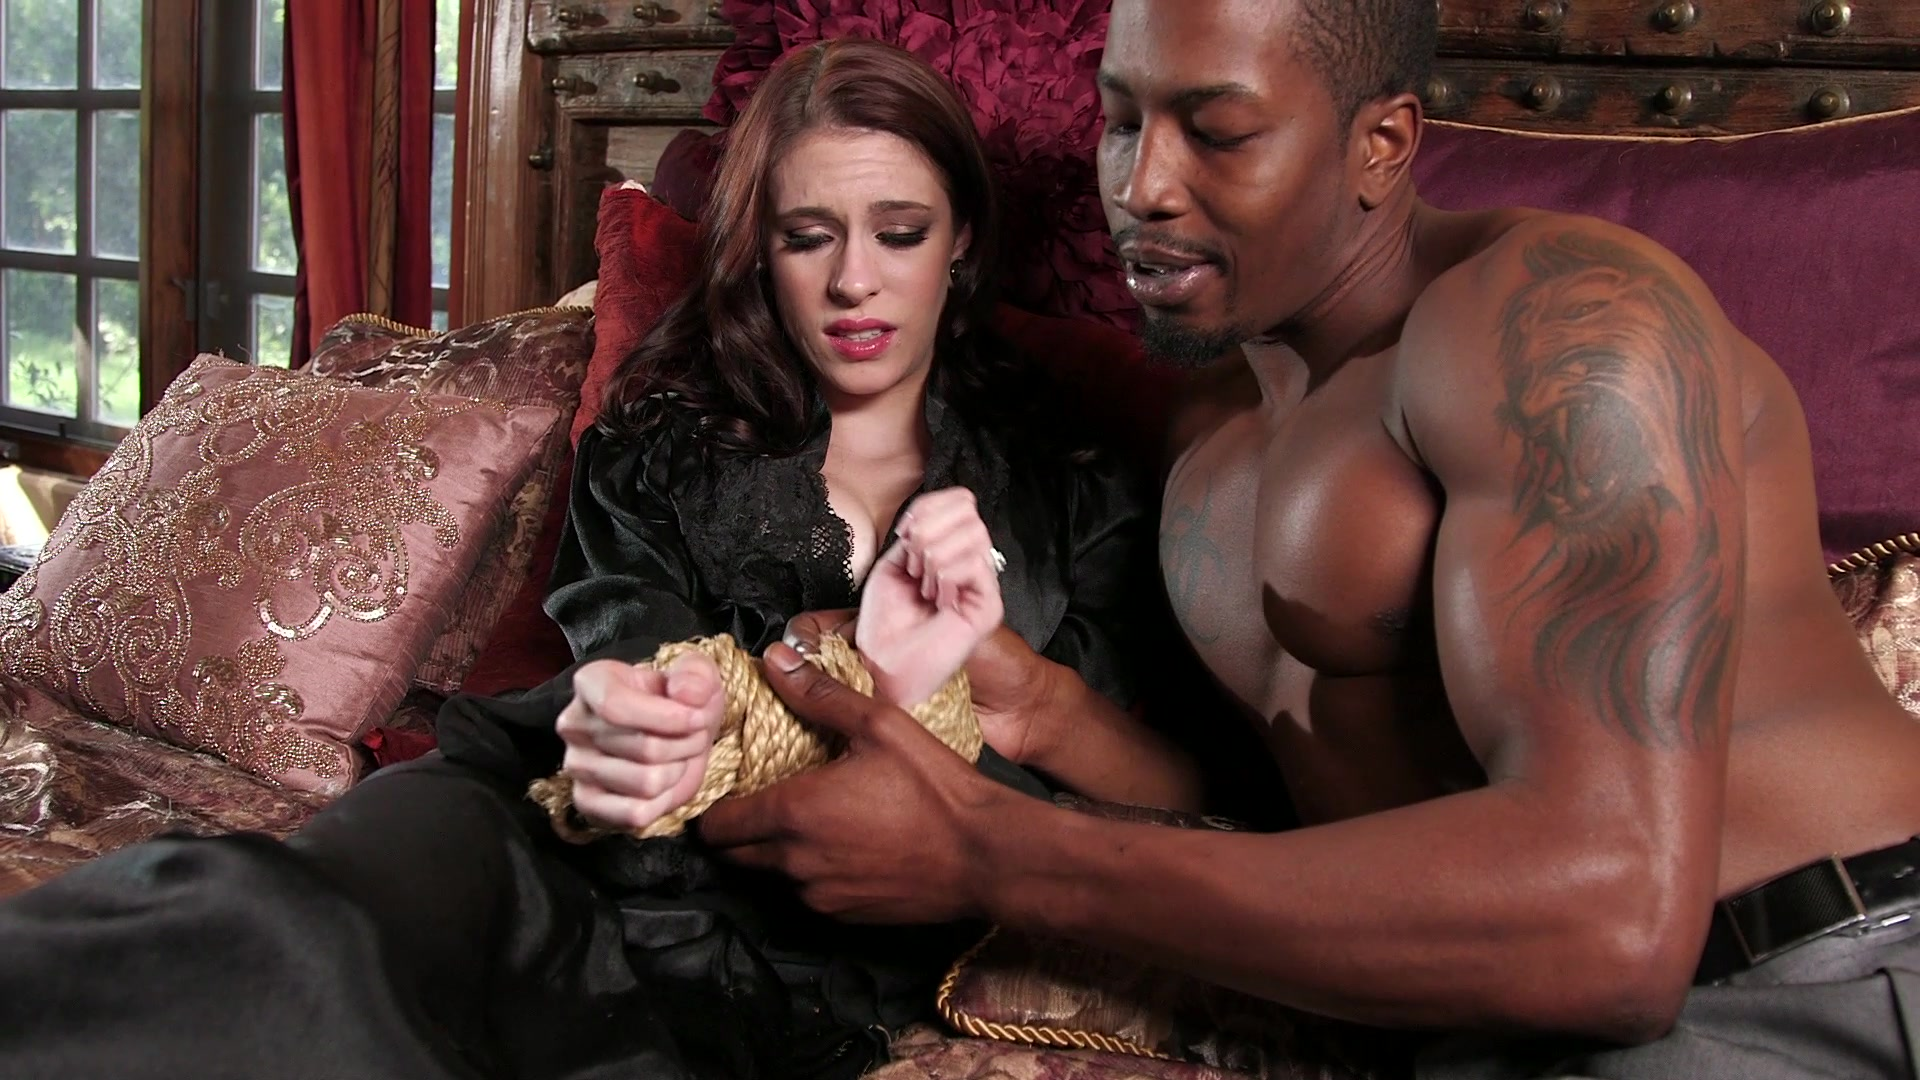 Adorable Anna De Ville Sucks His Cock and Takes It in Her Pussy, Starring:  Anna De Ville